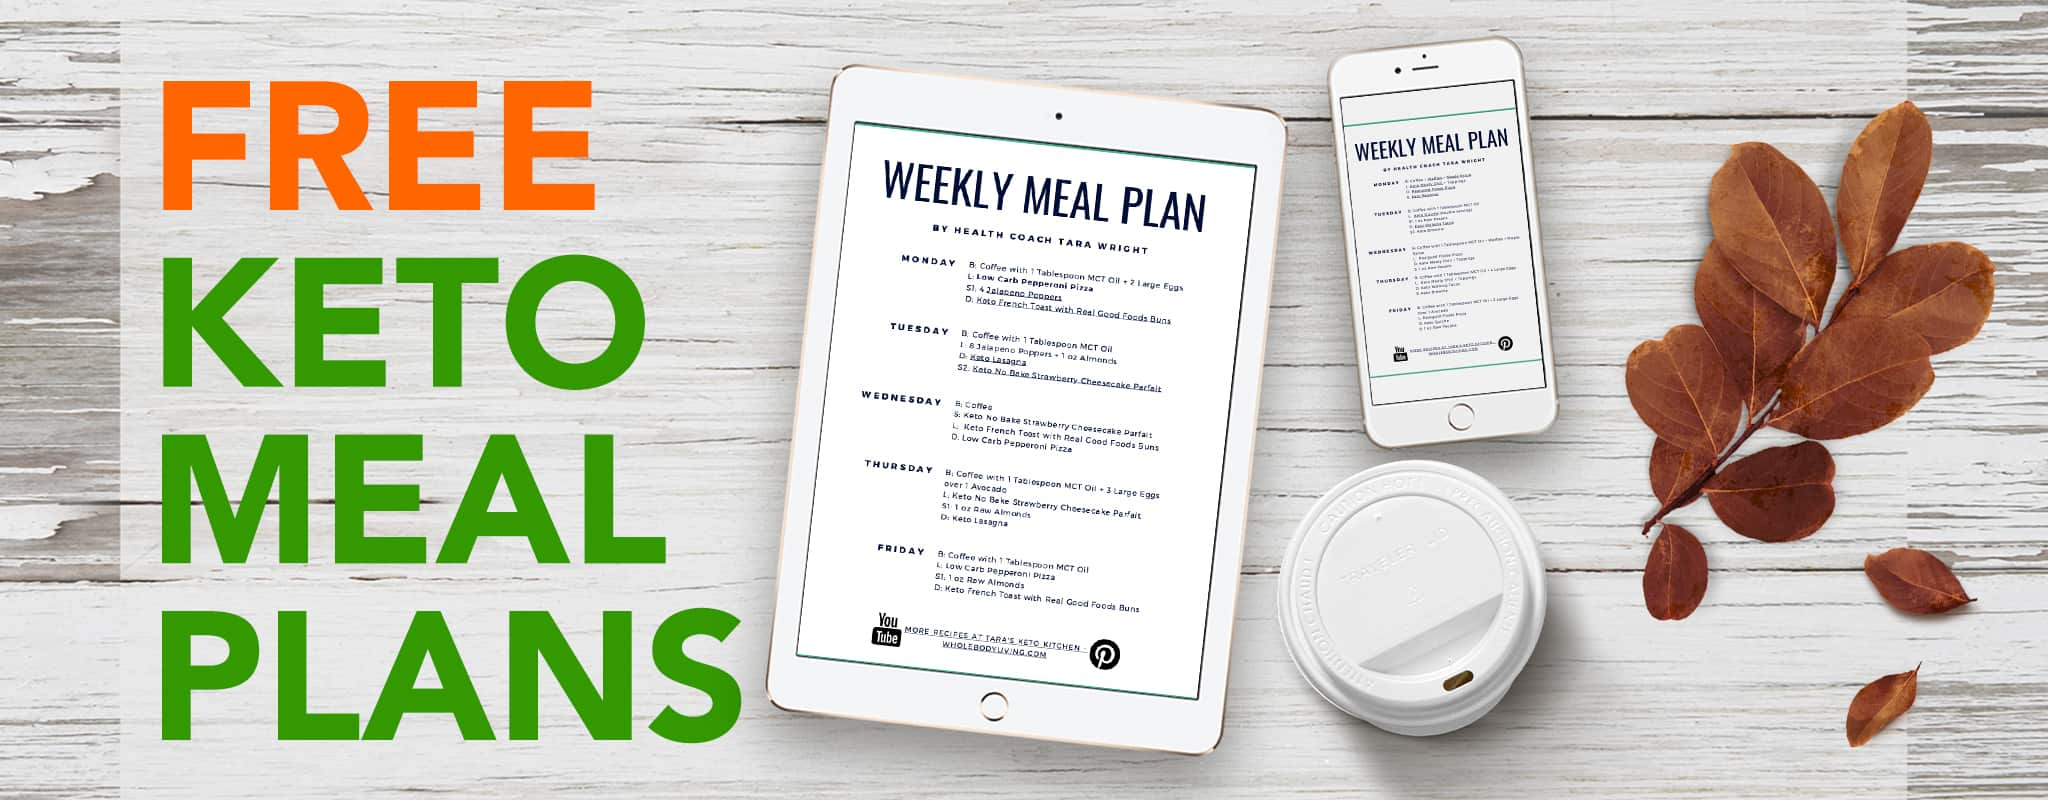 master the keto diet with free keto meal plans